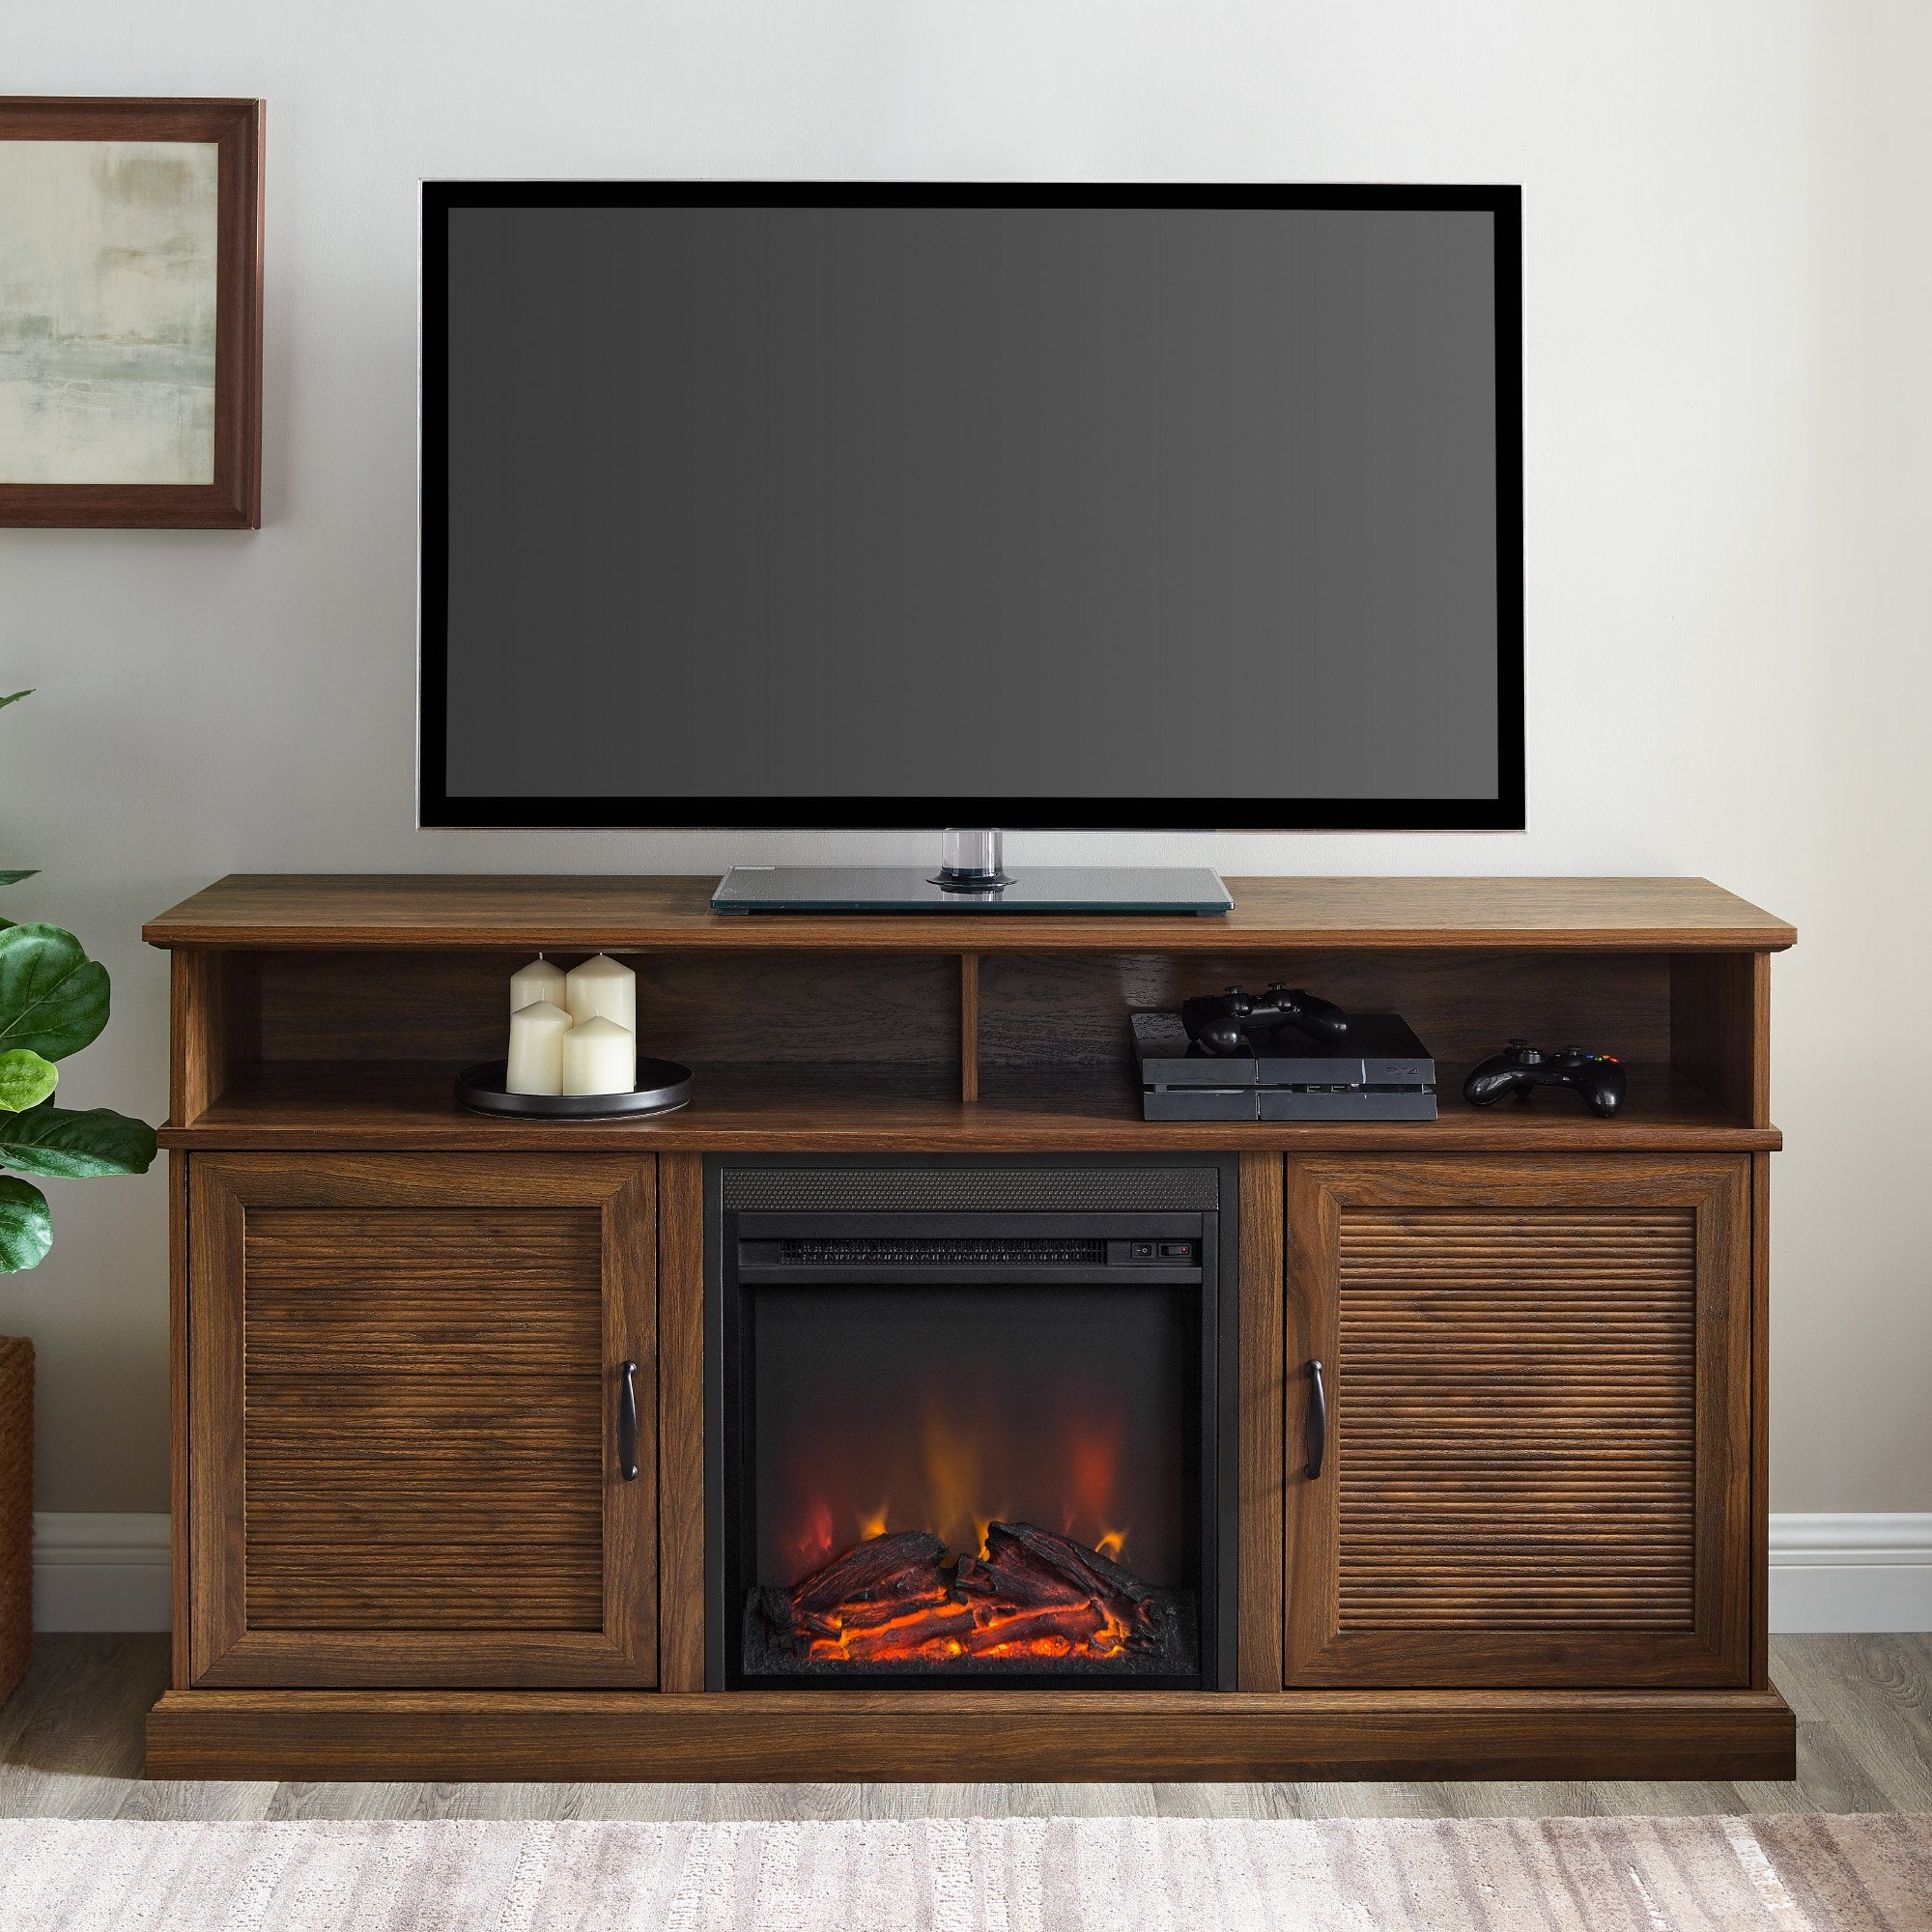 Dayton Fluted Door Fireplace TV Stand